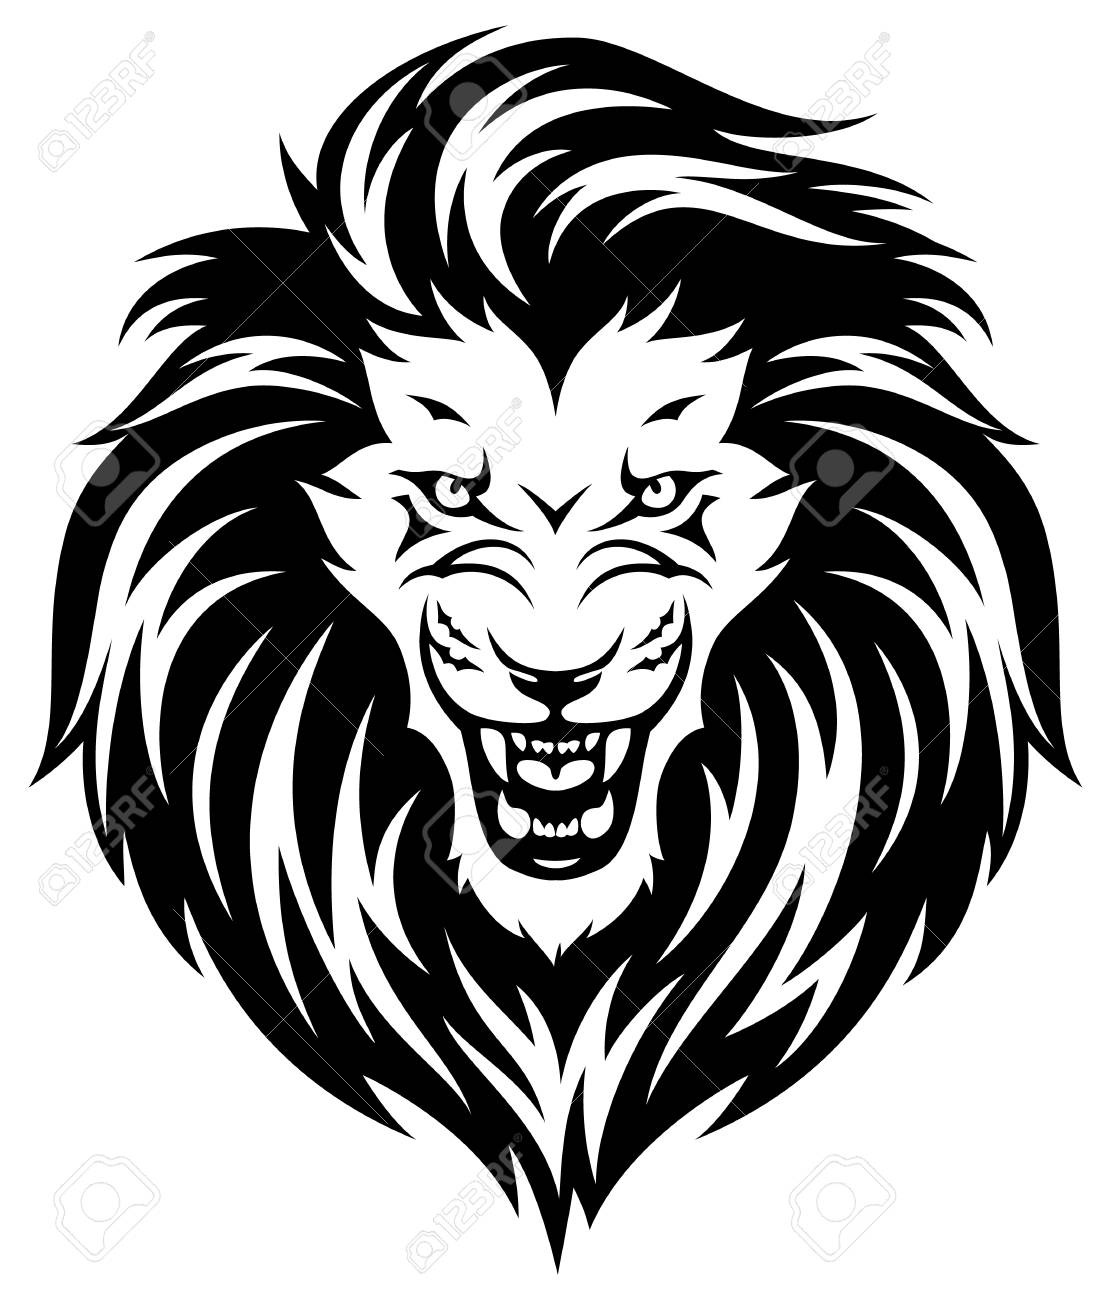 Head of roaring lion  Black illustration isolated on white background